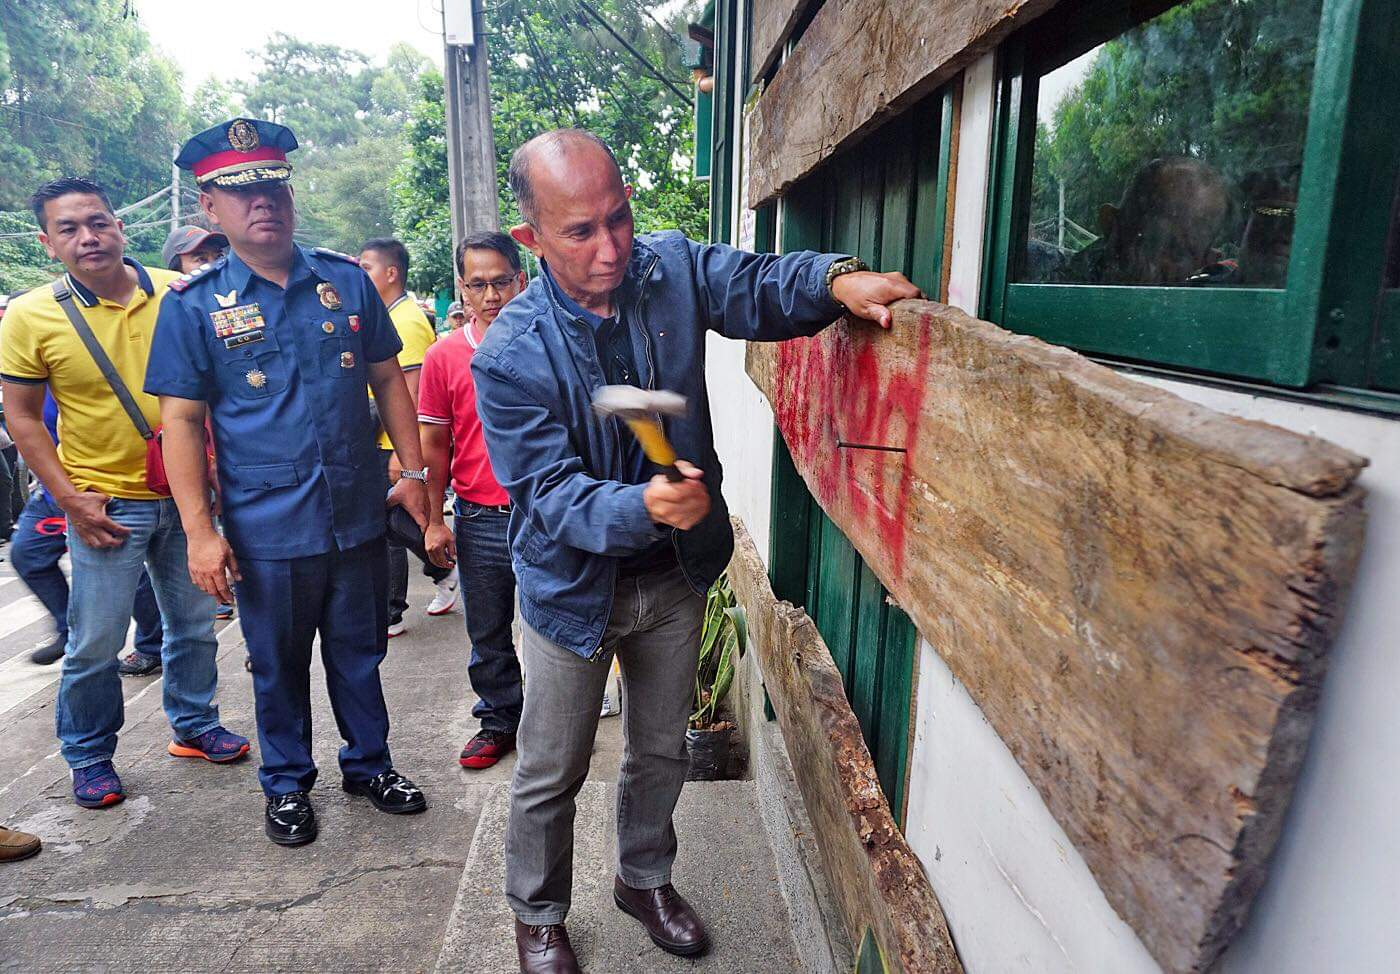 MAYOR IN ACTION. First-term Baguio City Mayor Benjamin Magalong shuts down a bar at Upper Session in his first week week in office in July 2019. Sourced photo